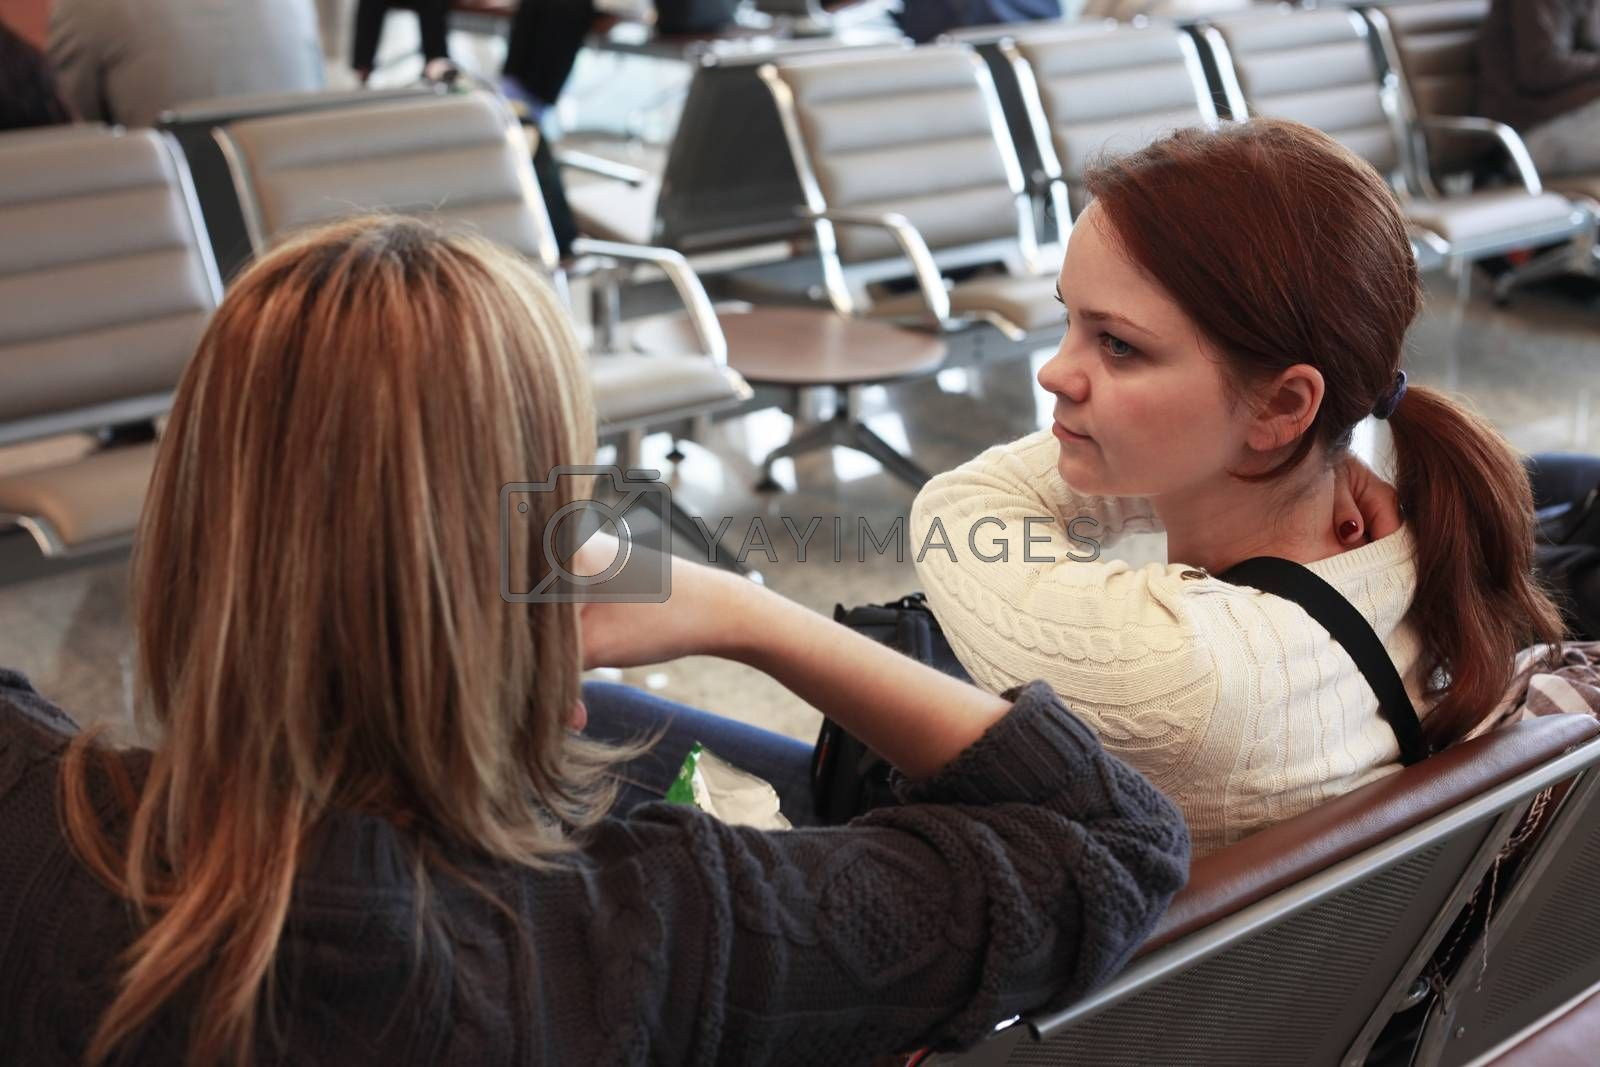 Two young girls in the waiting room at the airport